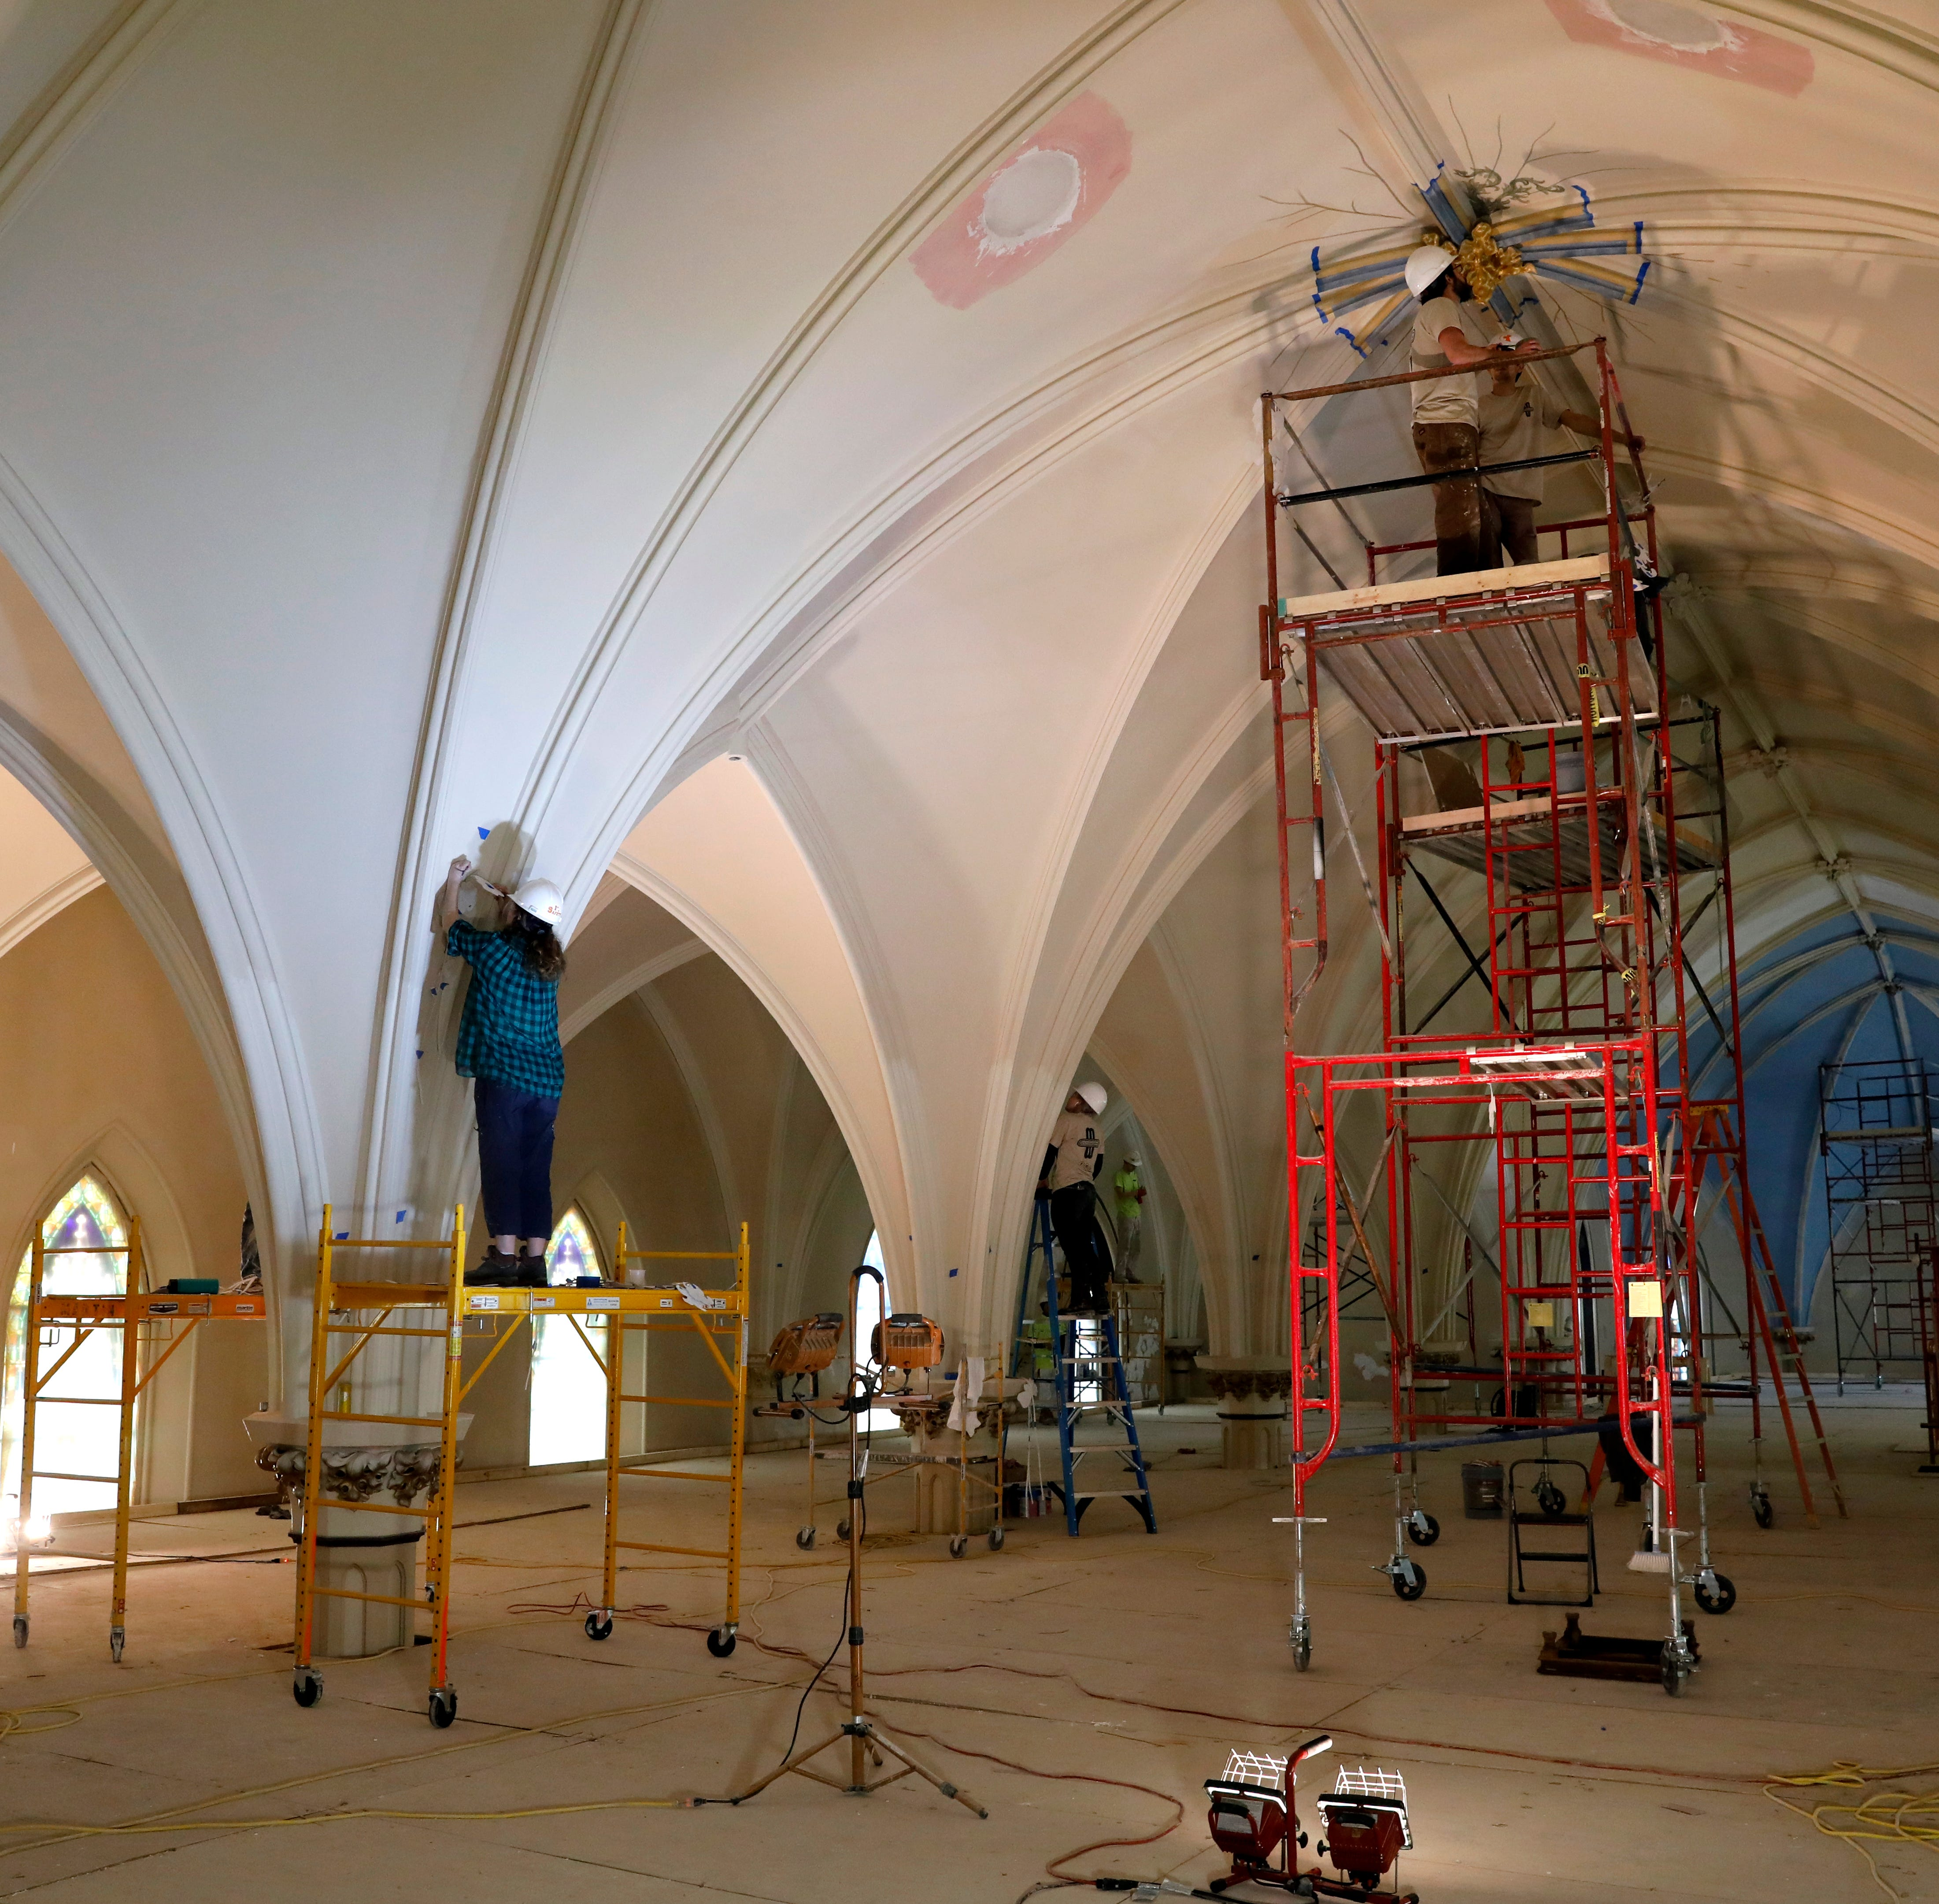 St. Mary church undergoing major renovation for its bicentennial